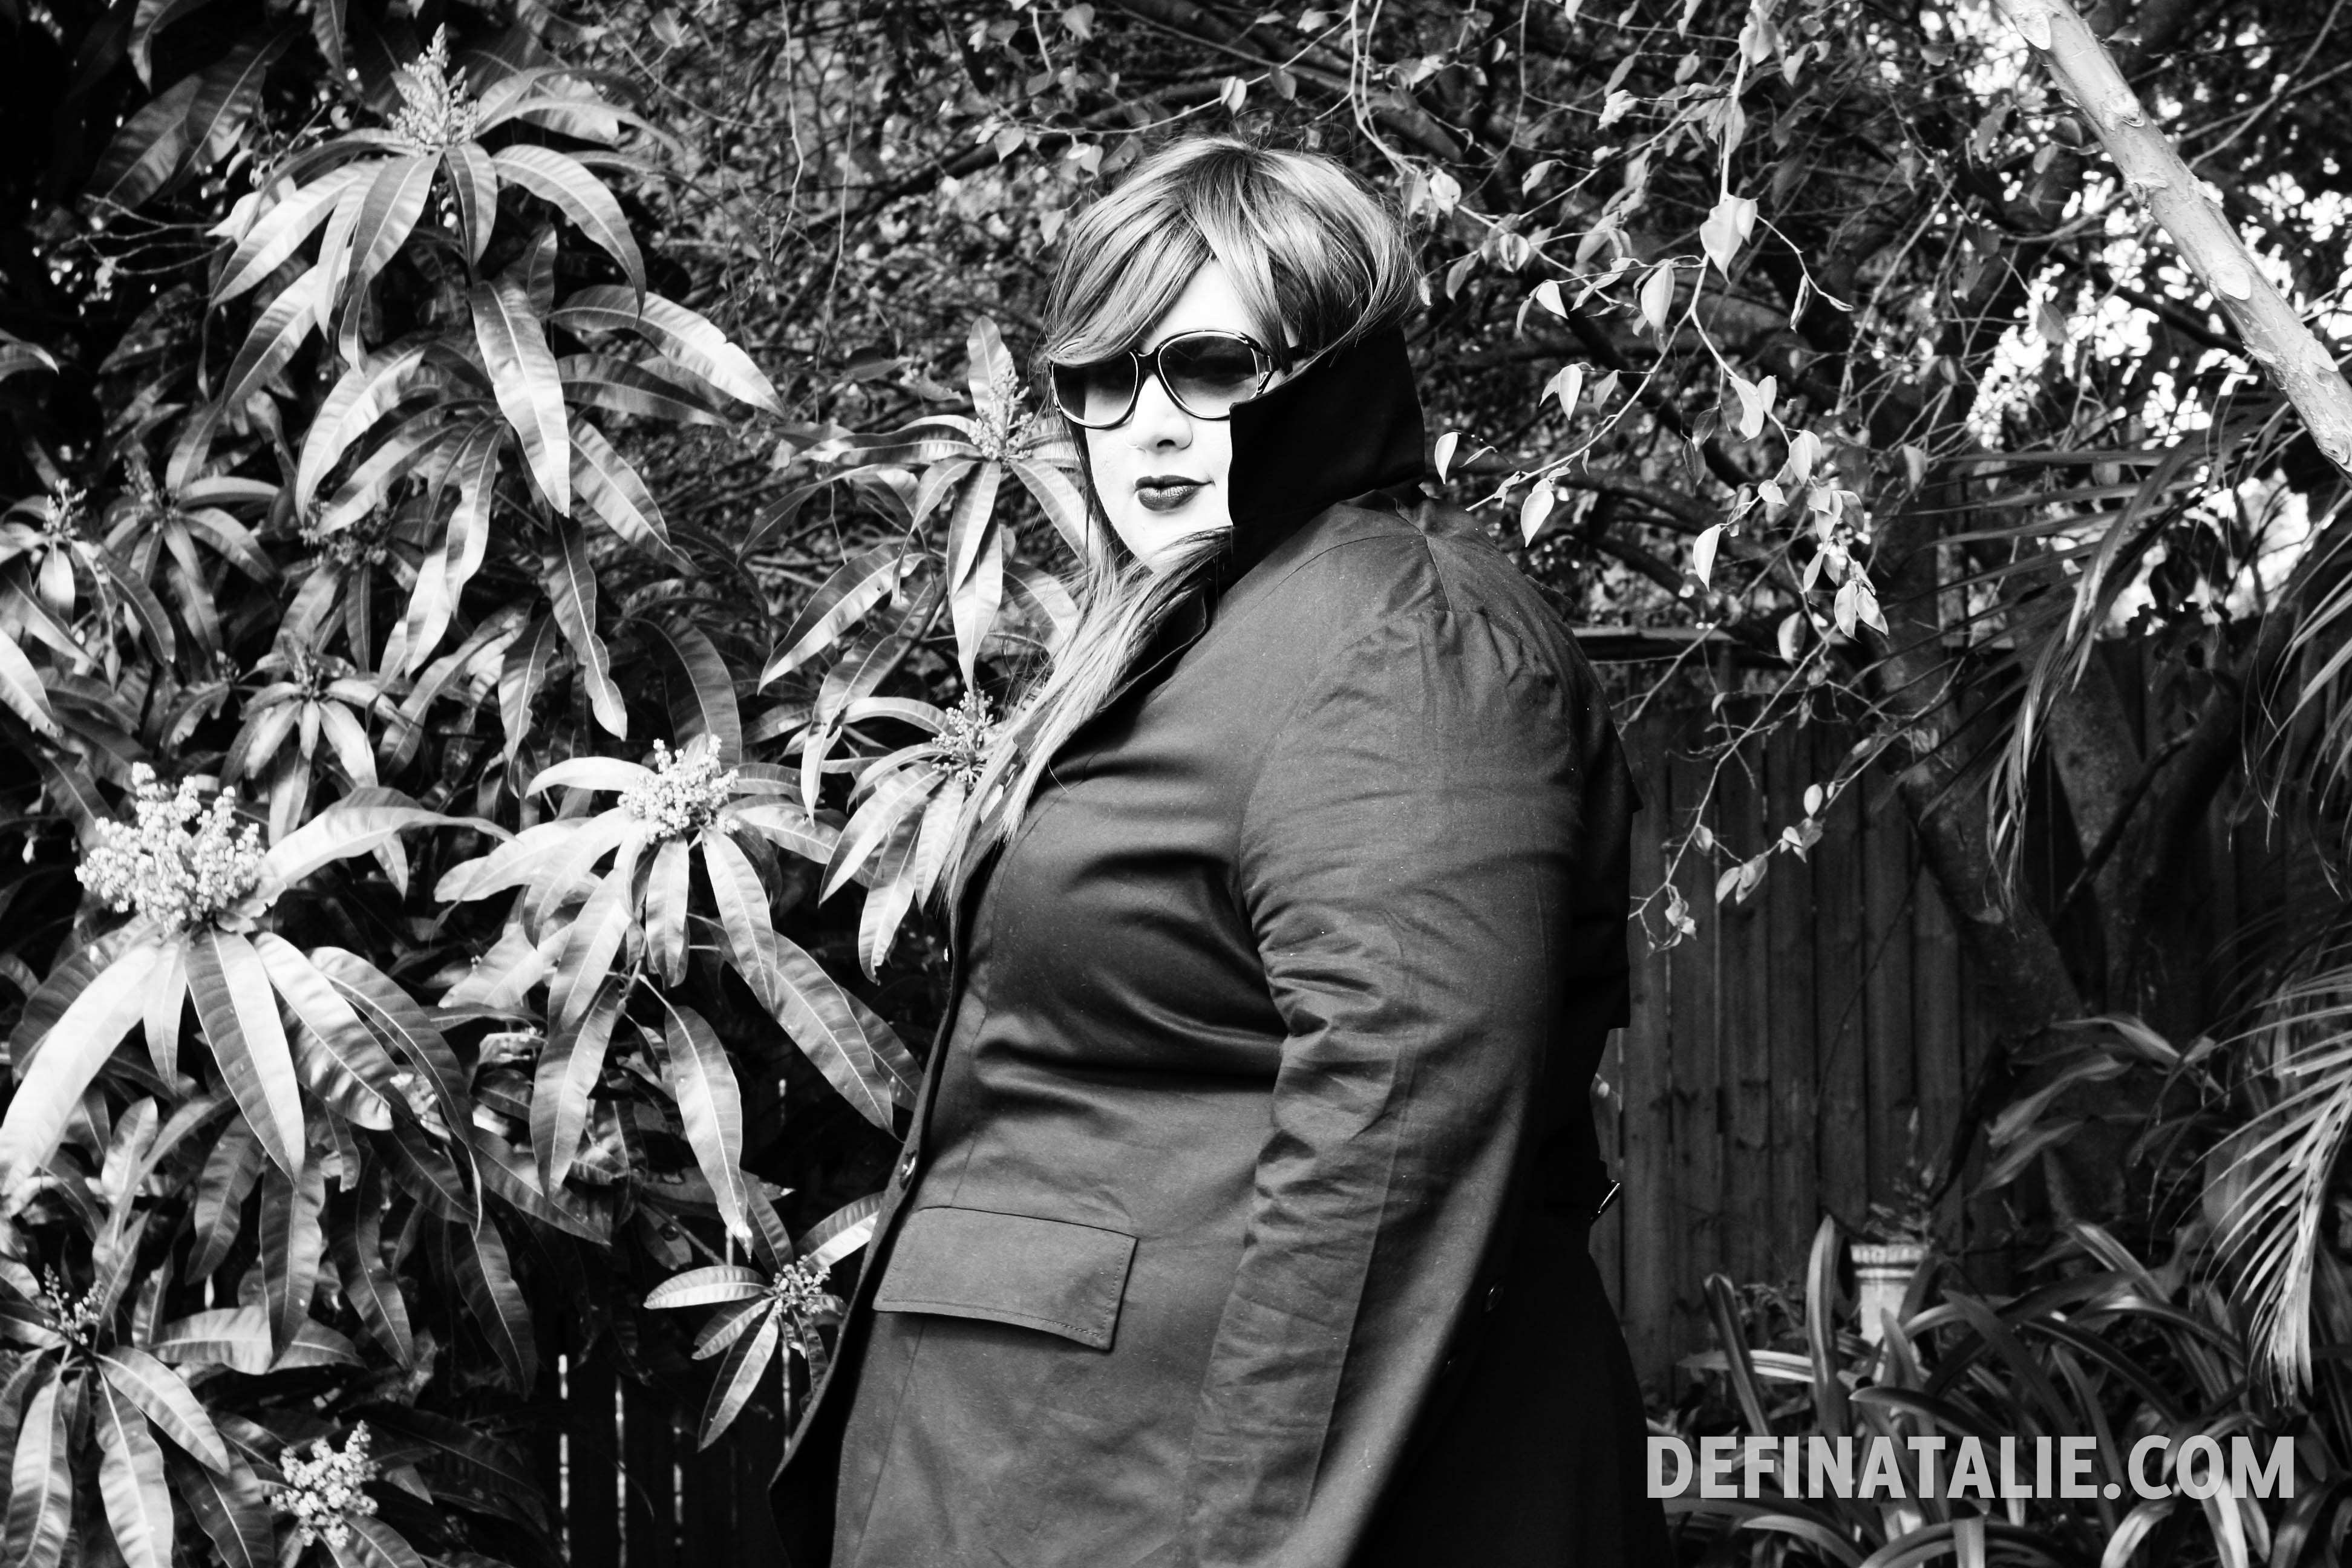 A photo of Natalie from the side peeking from behind the turned up collar of the jacket.